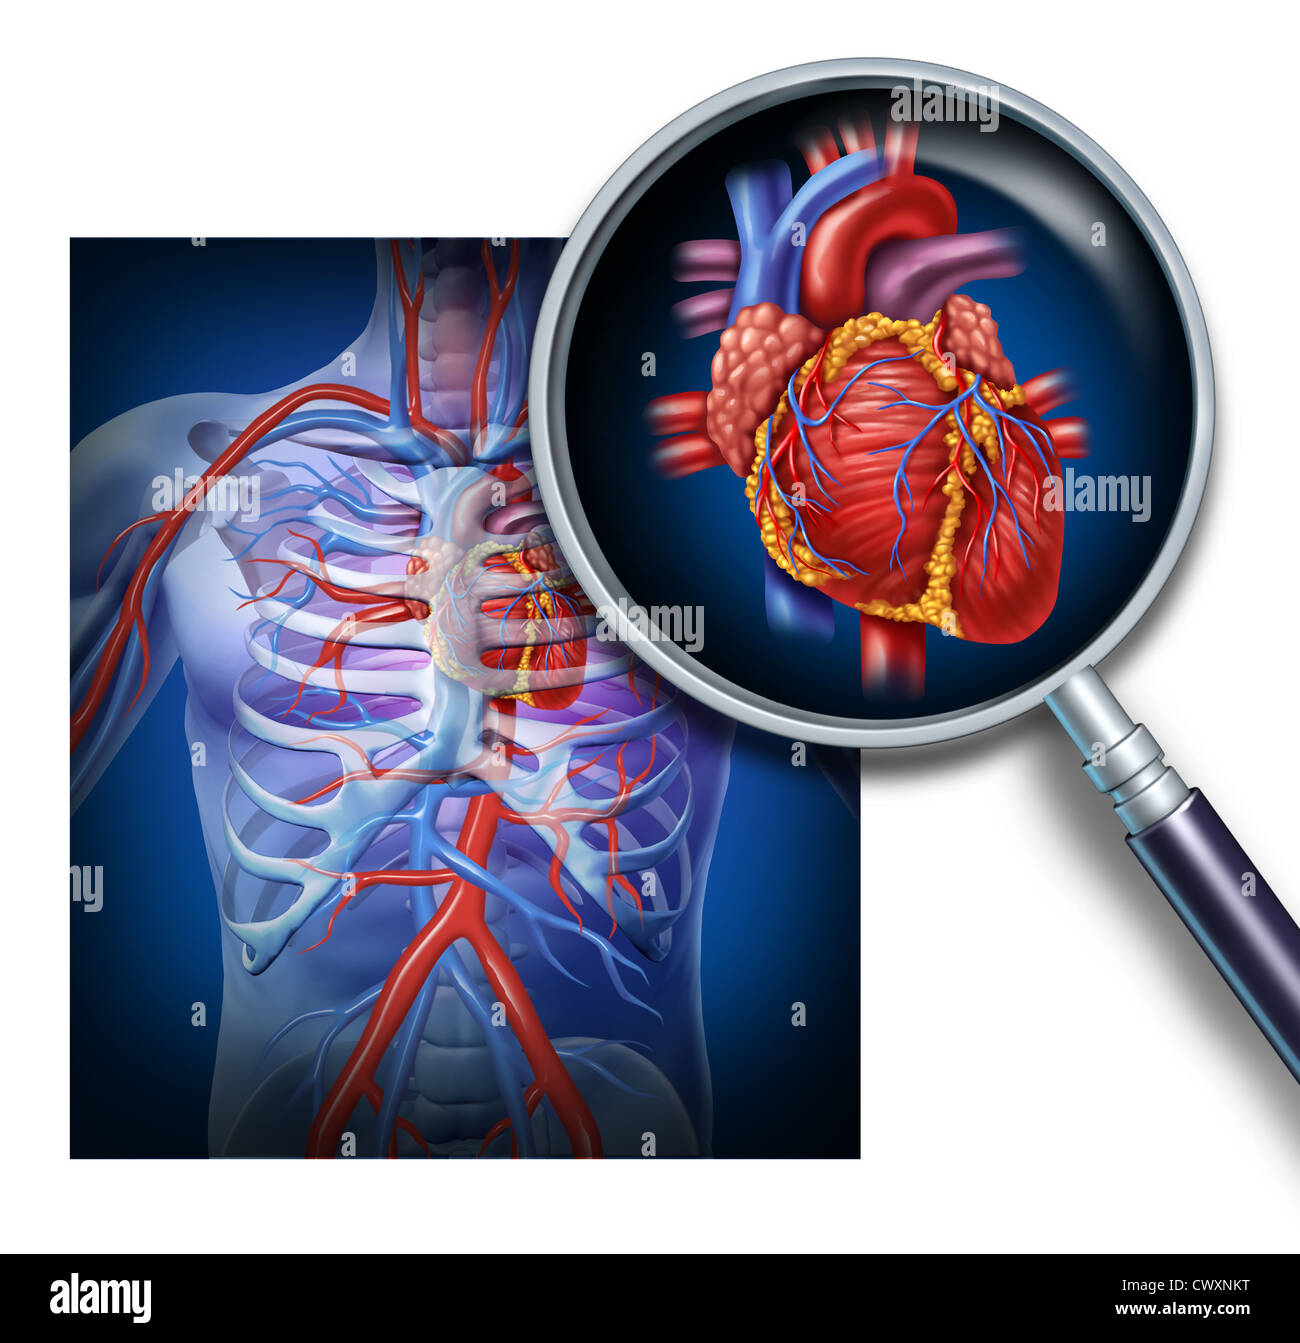 Anatomy Of The Human Heart As A Focus And Magnification Of The Stock